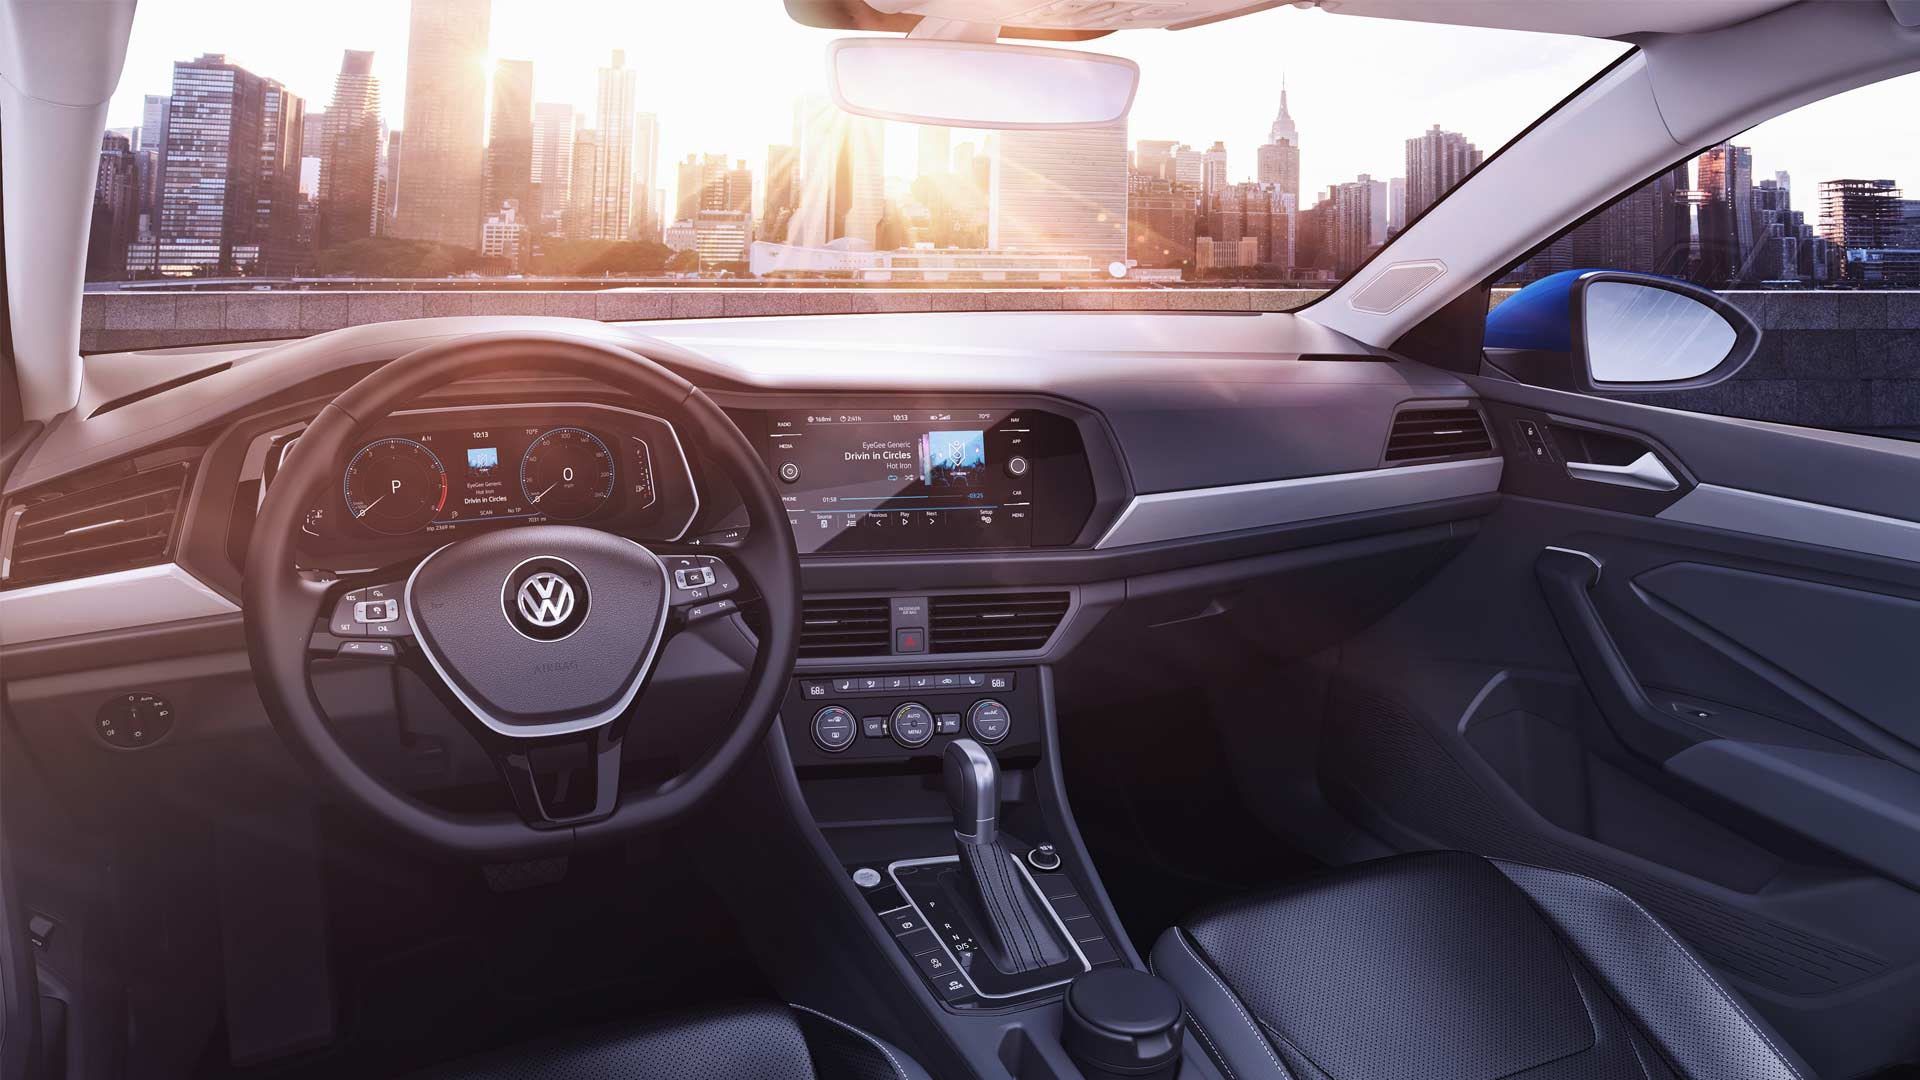 2019-7th-Generation-Volkswagen-Jetta-Interior_2